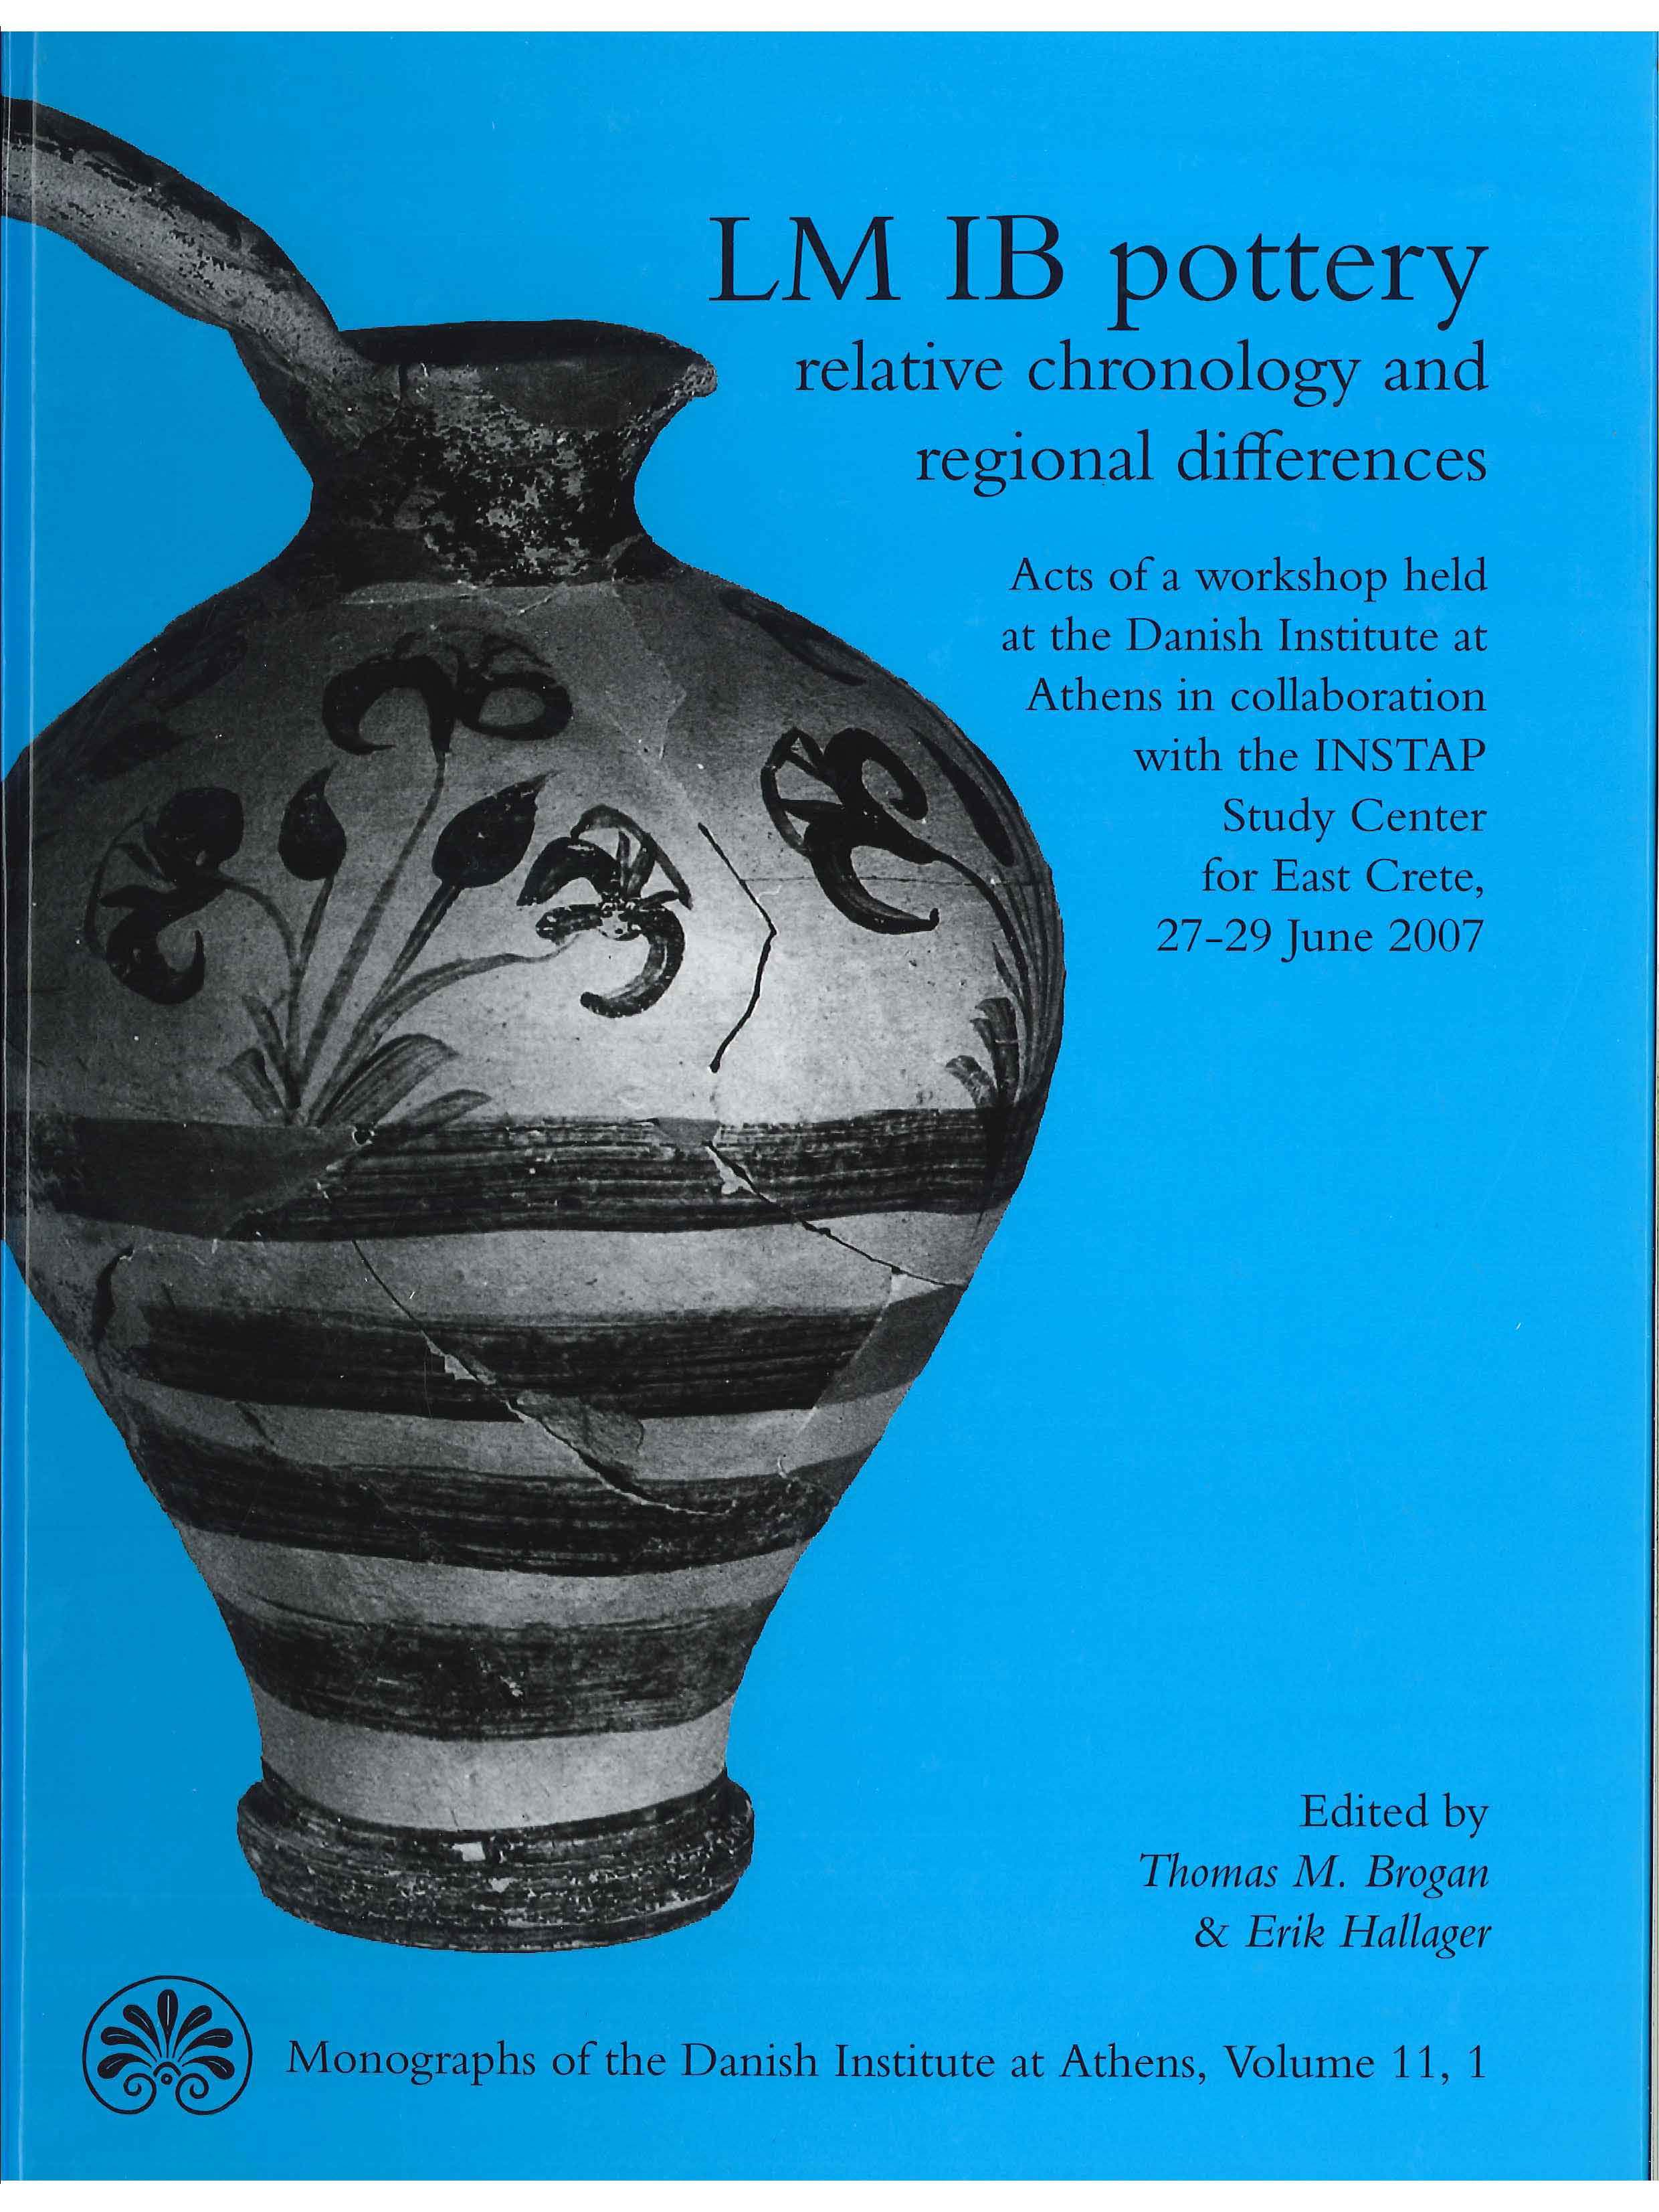 View Vol. 11 No. 1 (2011): LM IB pottery: relative chronology and regional differences